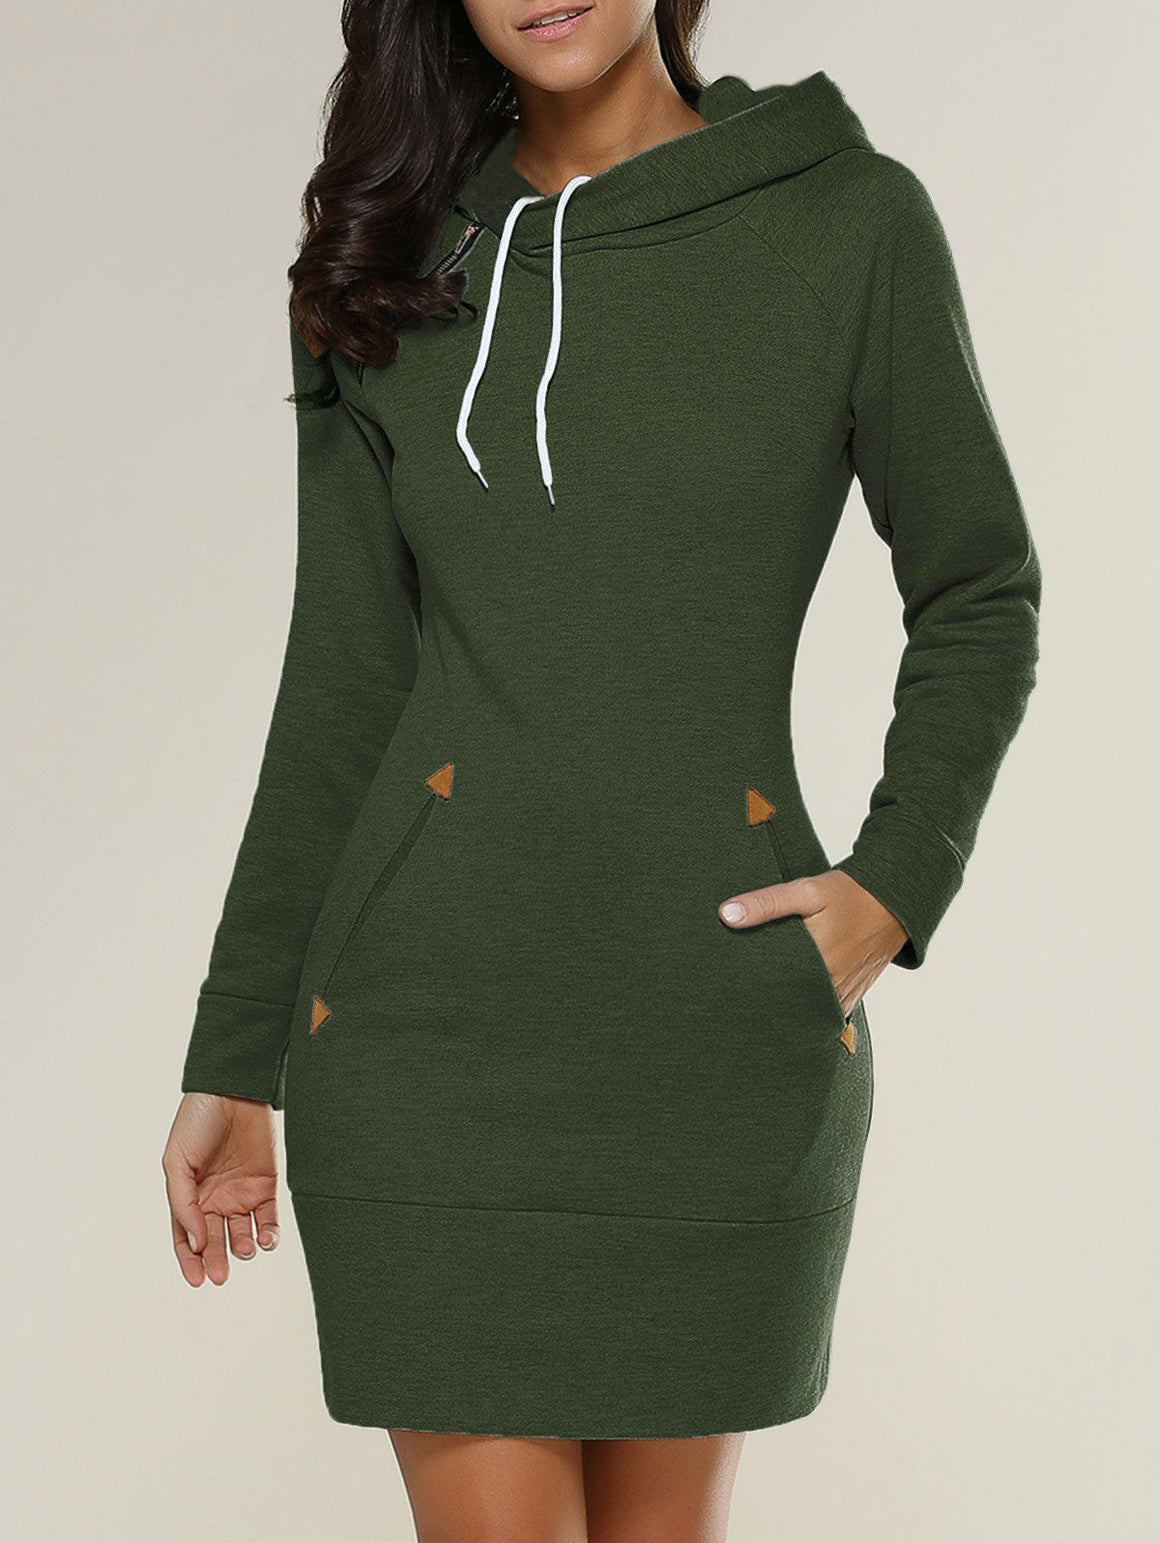 Hooded turtle neck long sleeve dress dress P4065Buy mate